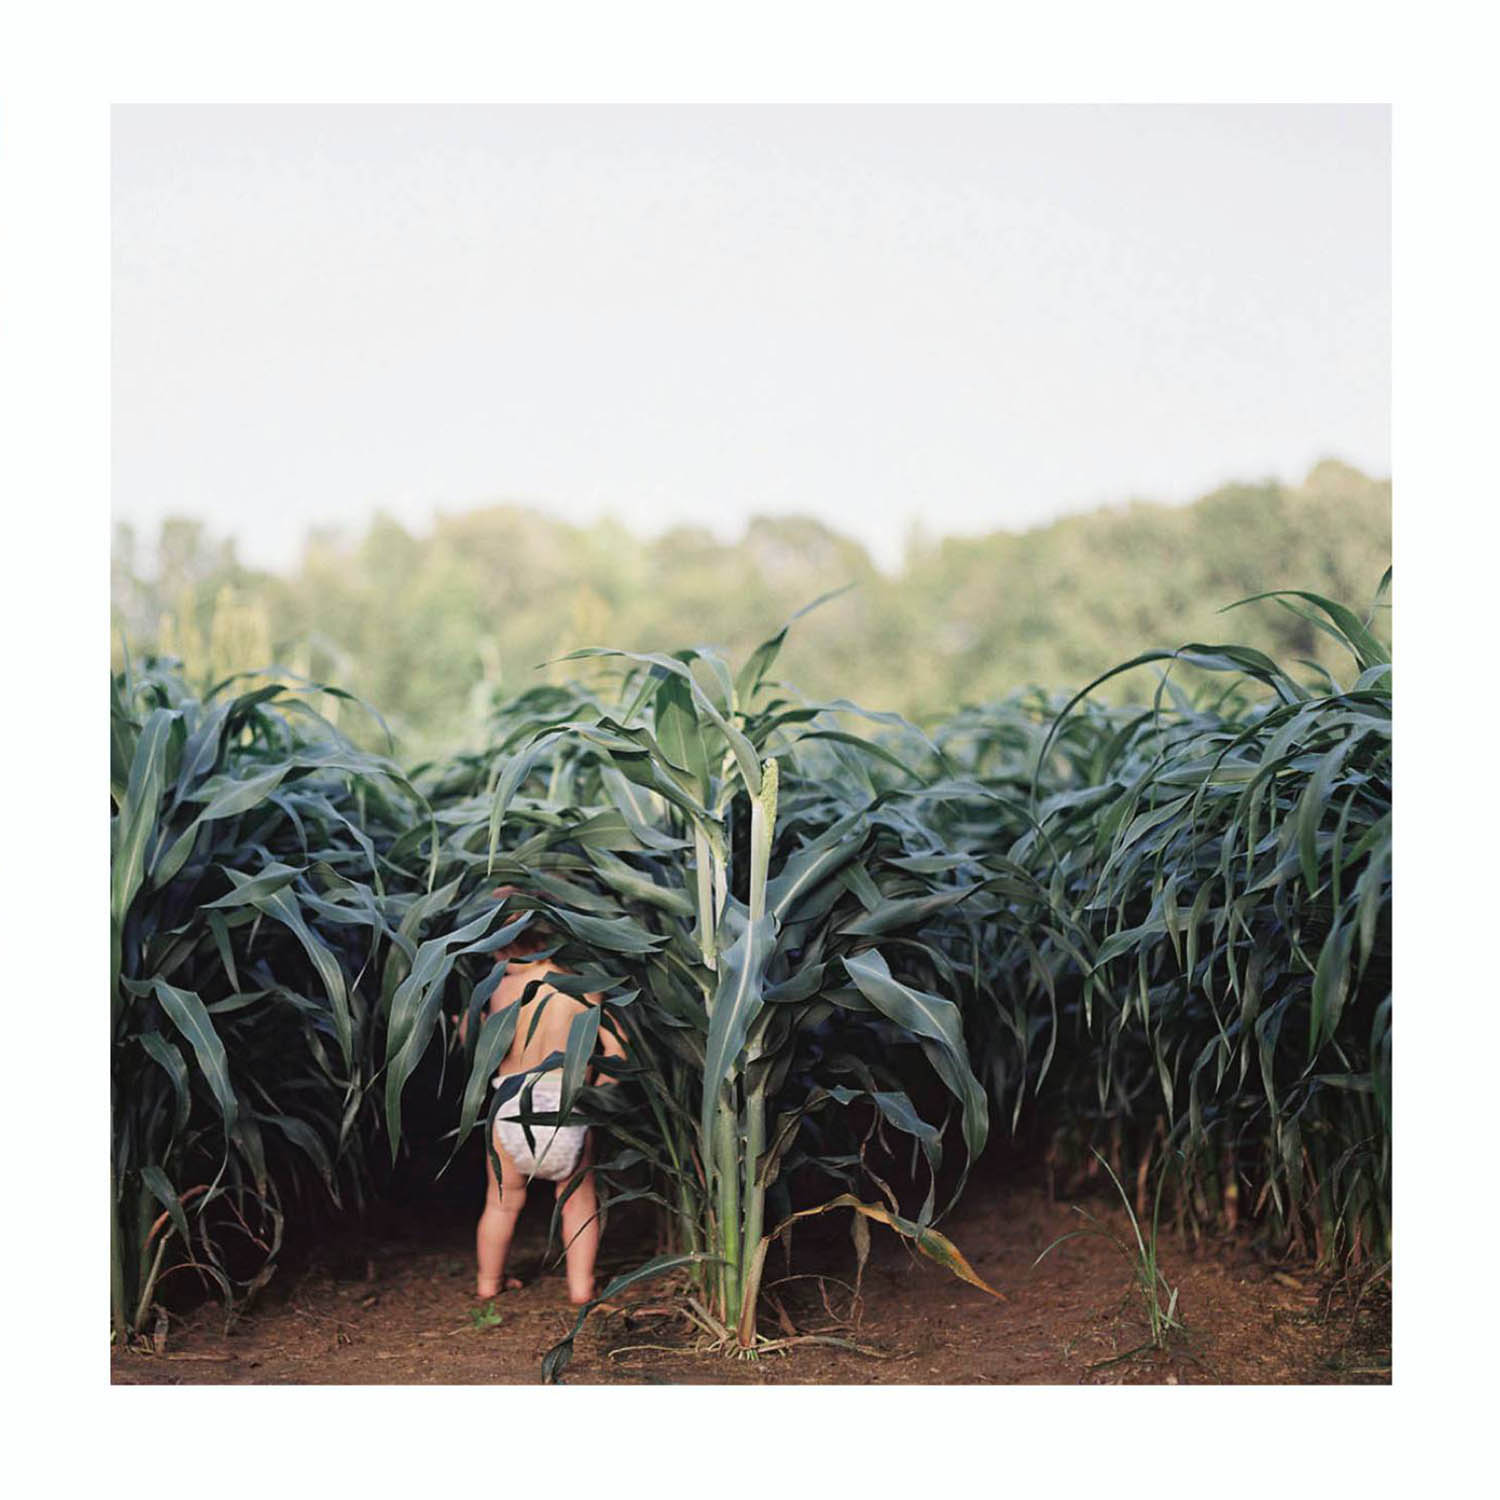 Photo: Ashleigh Coleman's photo of a toddler wearing only a diaper, wandering into a corn field